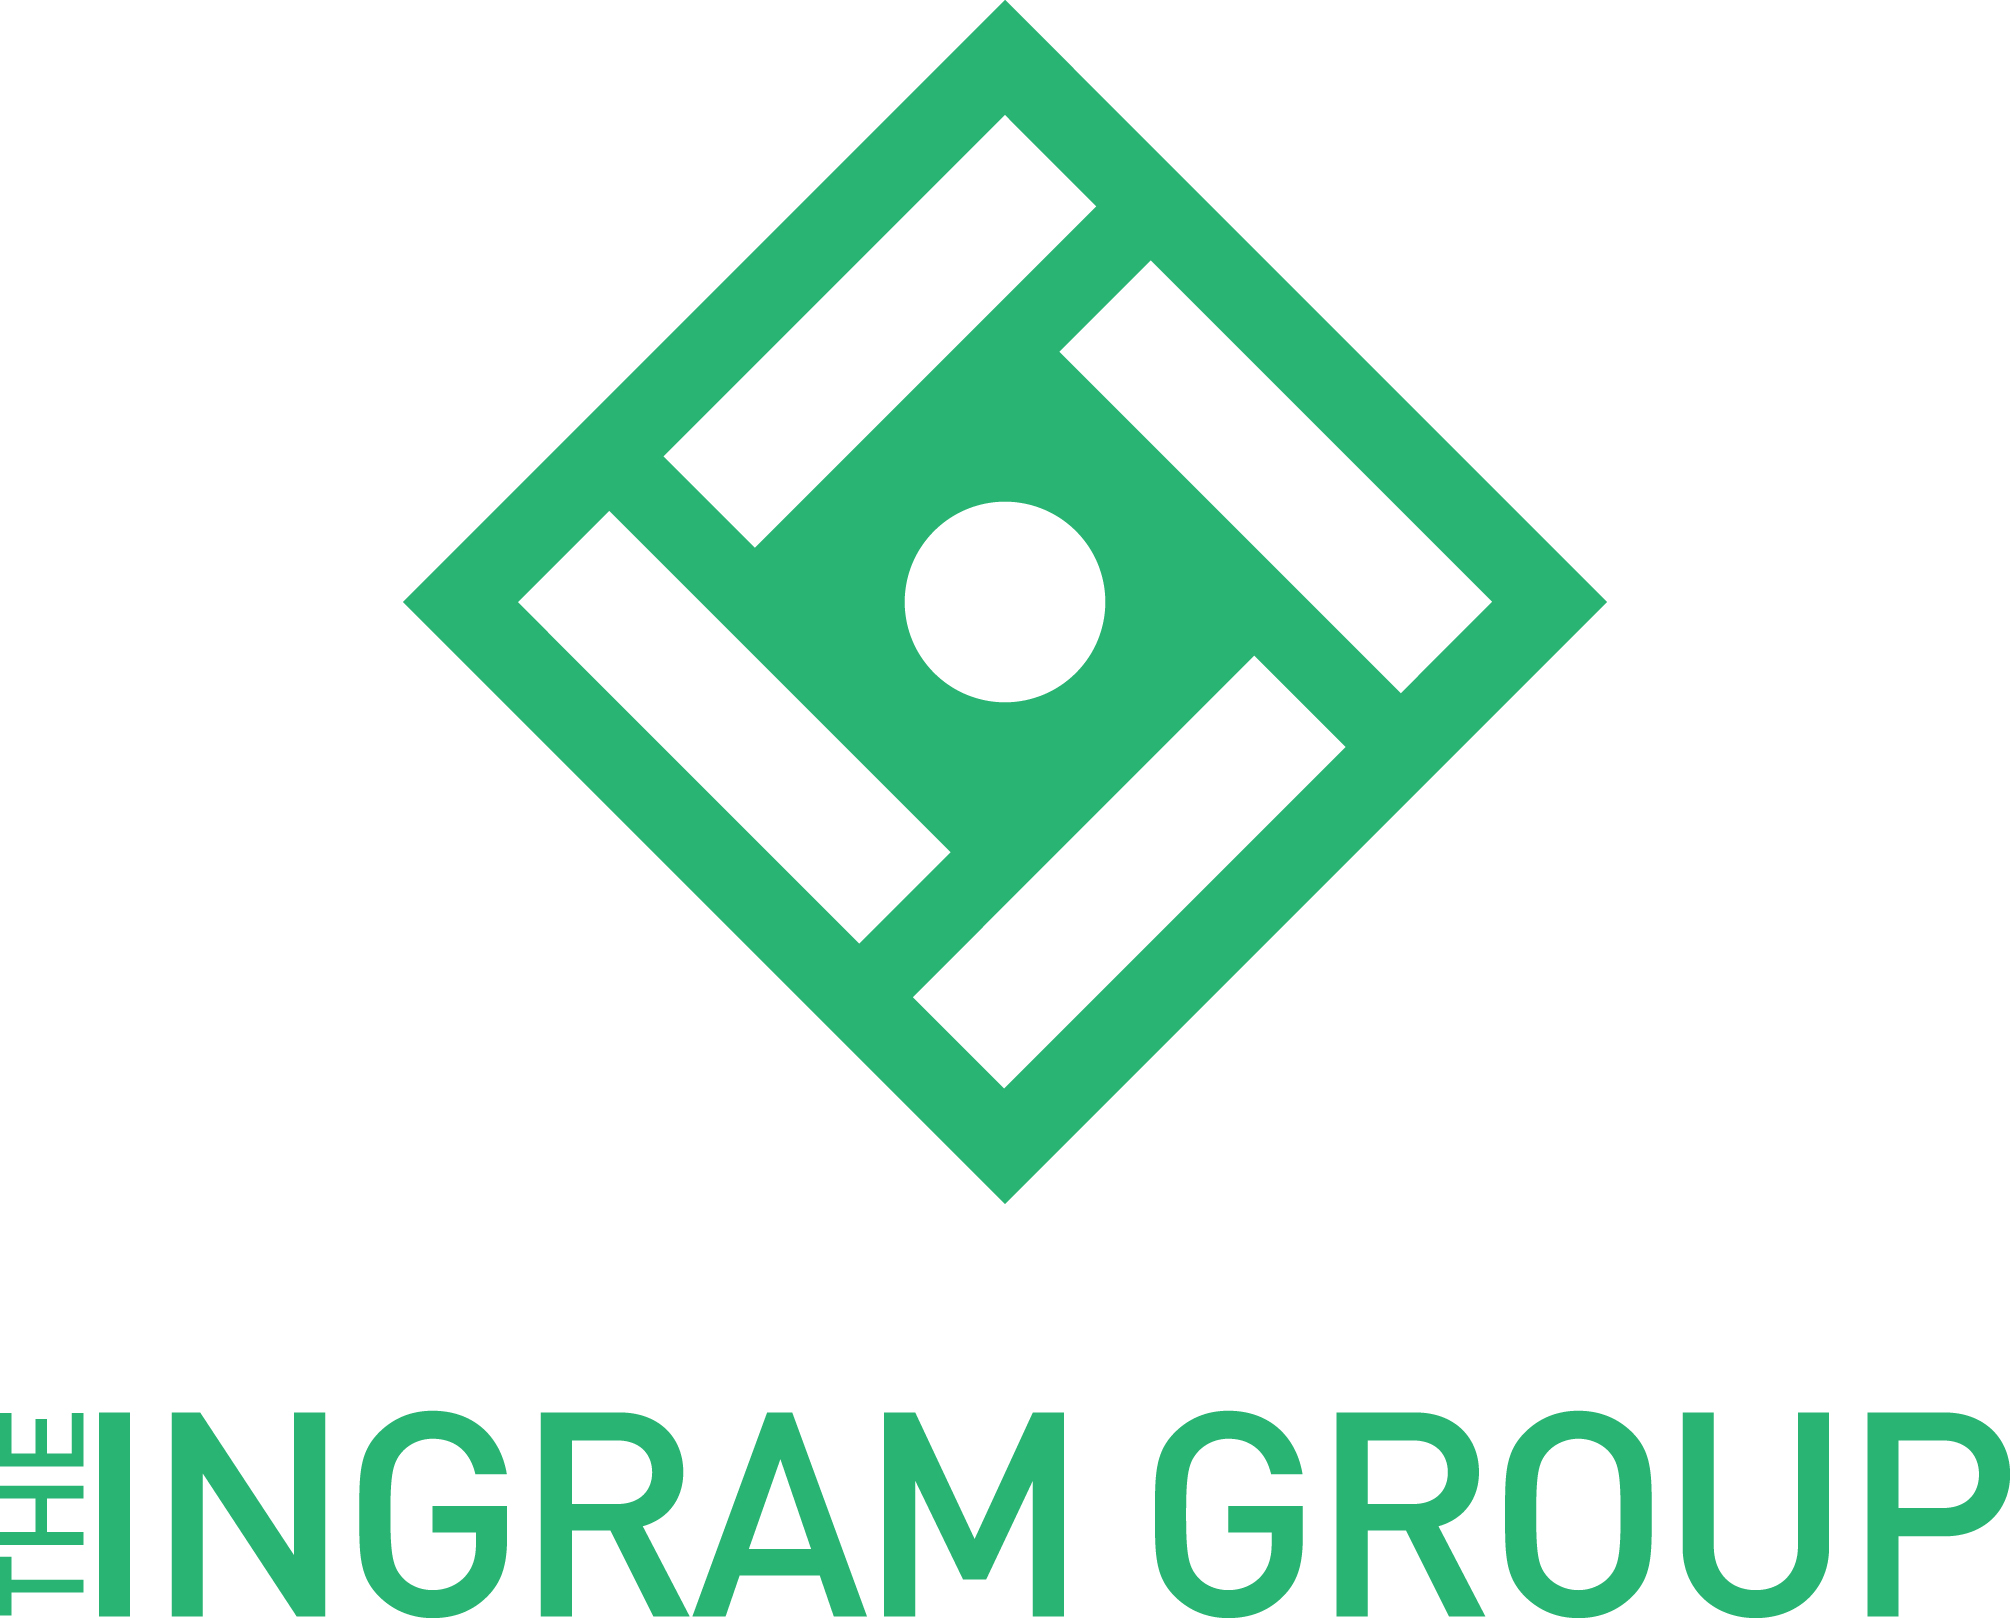 The Ingram Group